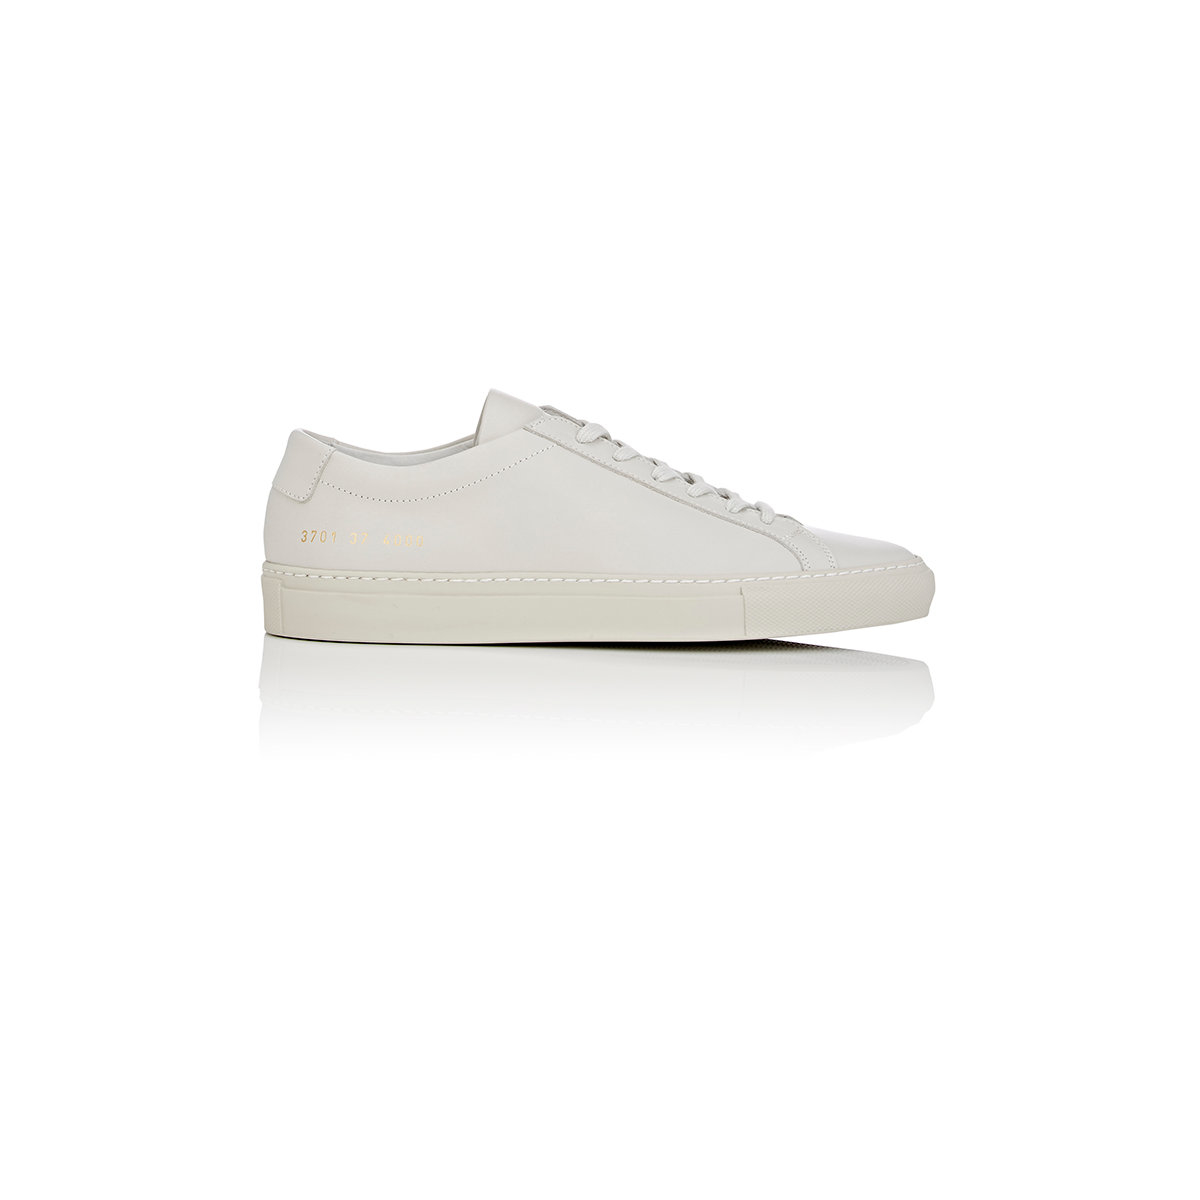 common projects original achilles low in white lyst. Black Bedroom Furniture Sets. Home Design Ideas